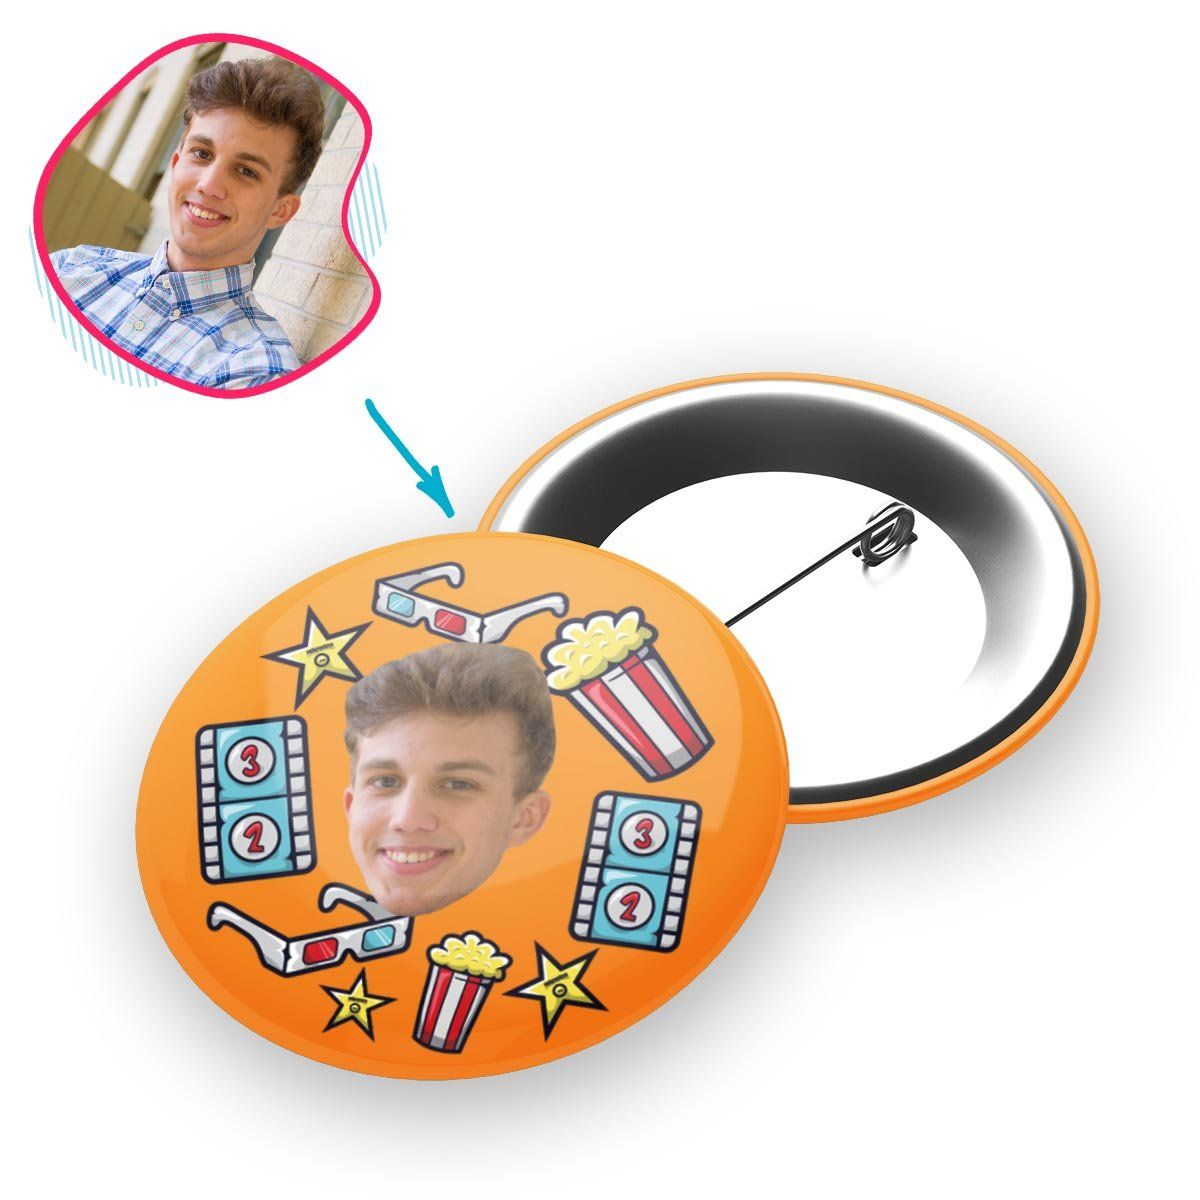 orange Movie pin personalized with photo of face printed on it